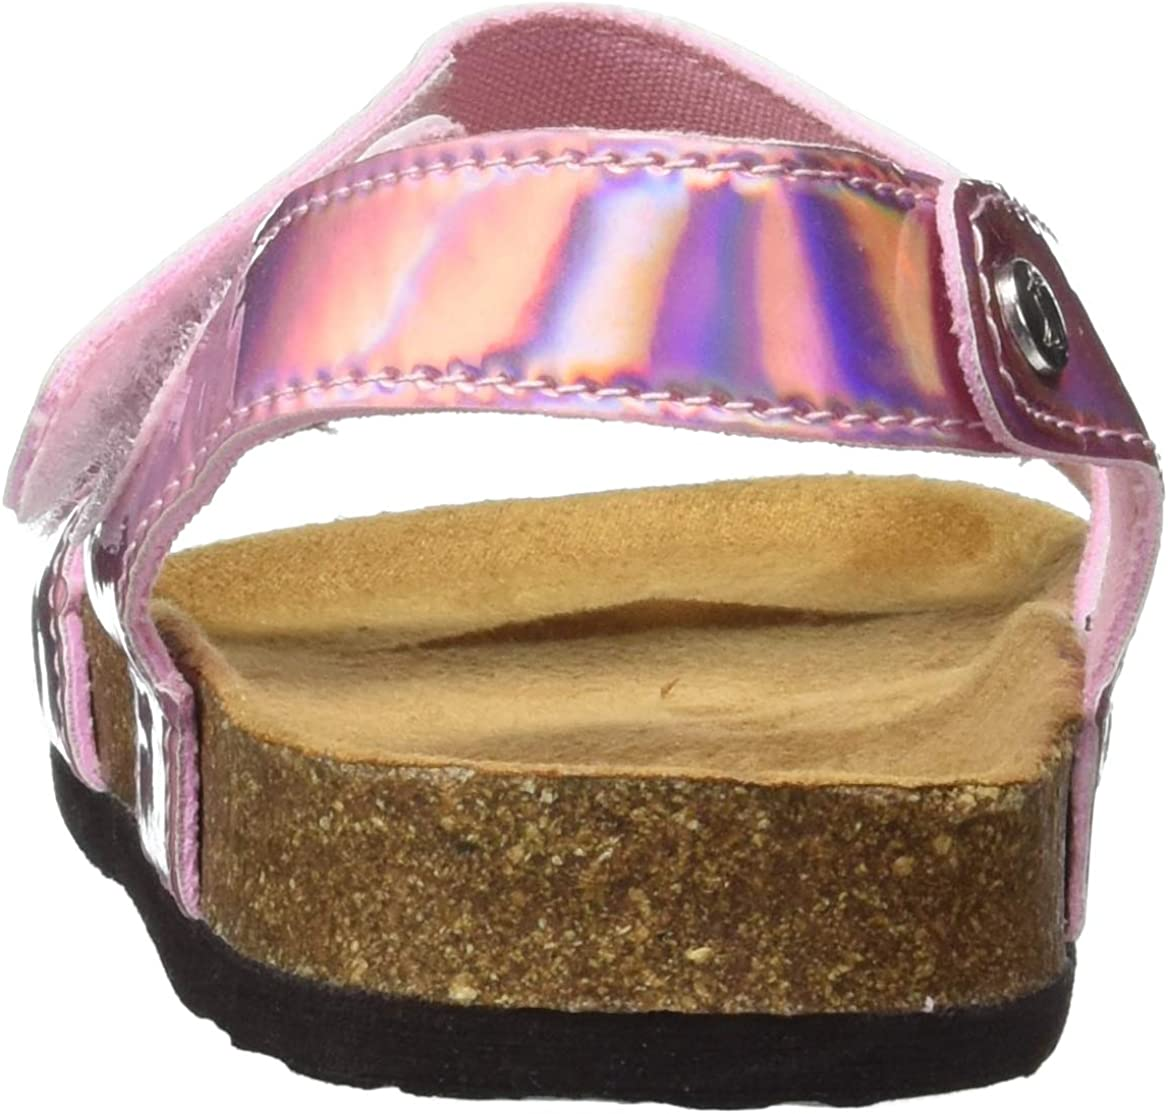 Metallic Pink 3 Little Kid Joules Kids Girls Tippy Toes Sandal Toddler//Little Kid//Big Kid